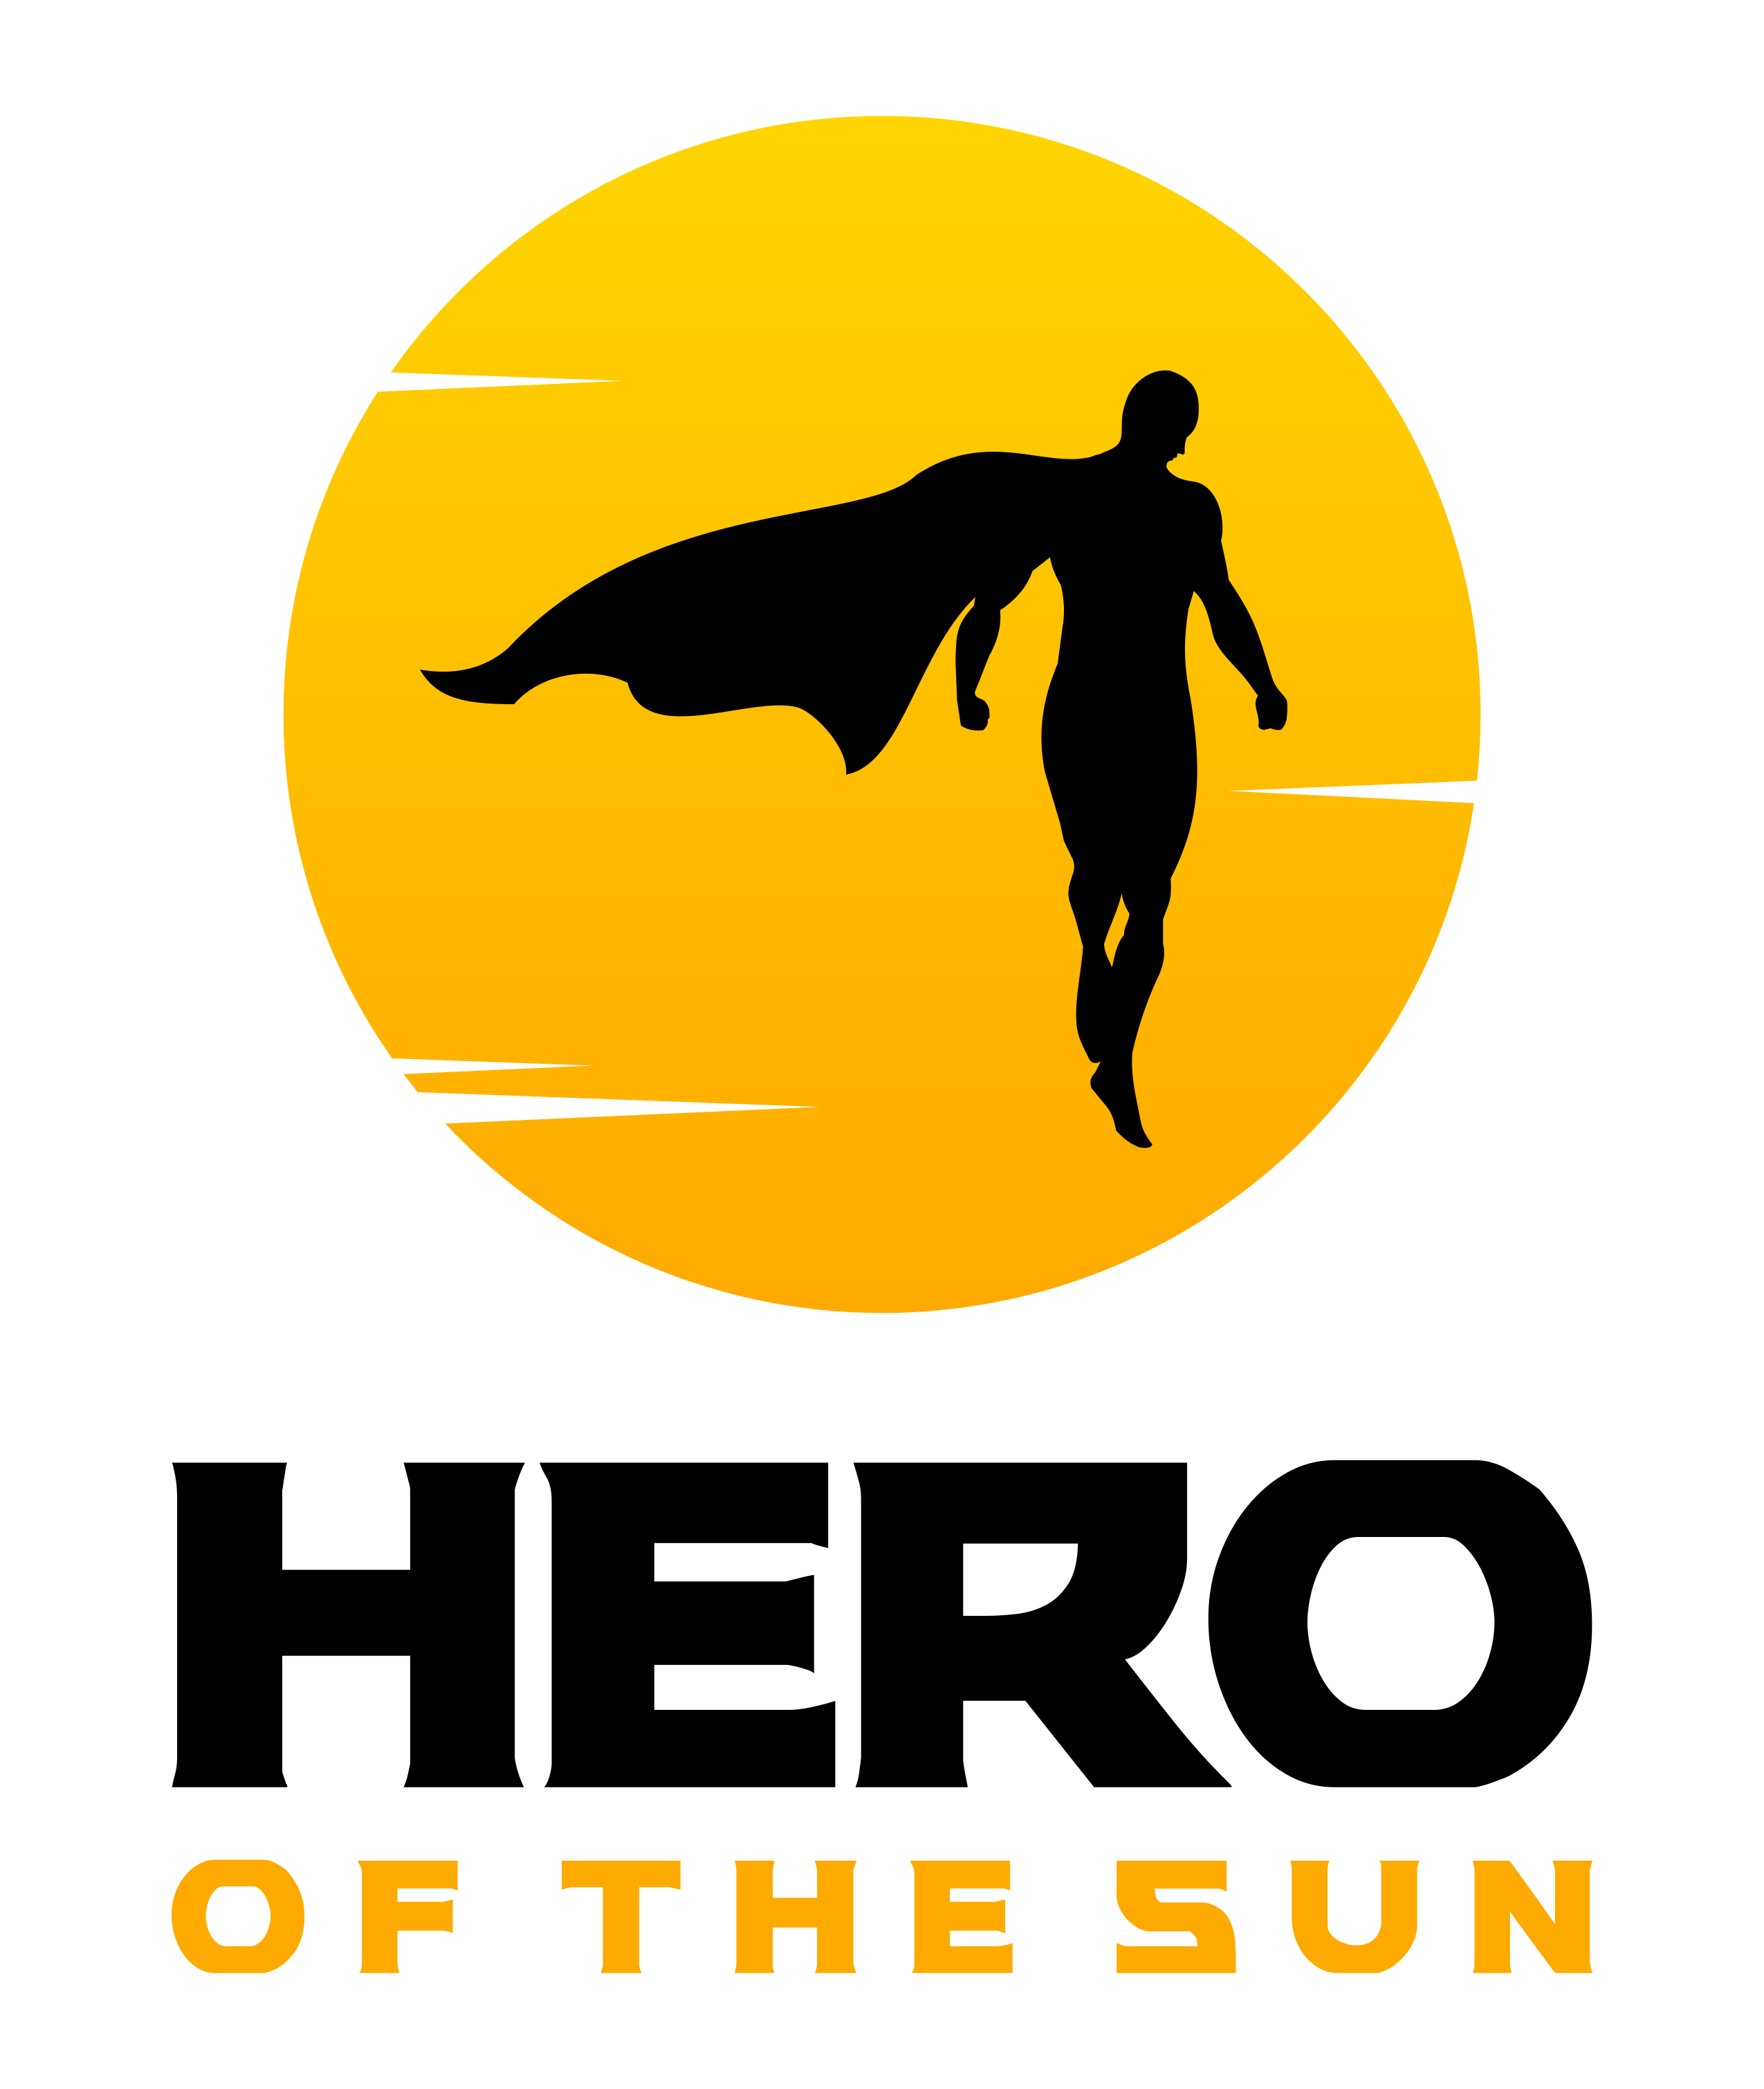 Logo for mobile app development company - Hero of the Sun